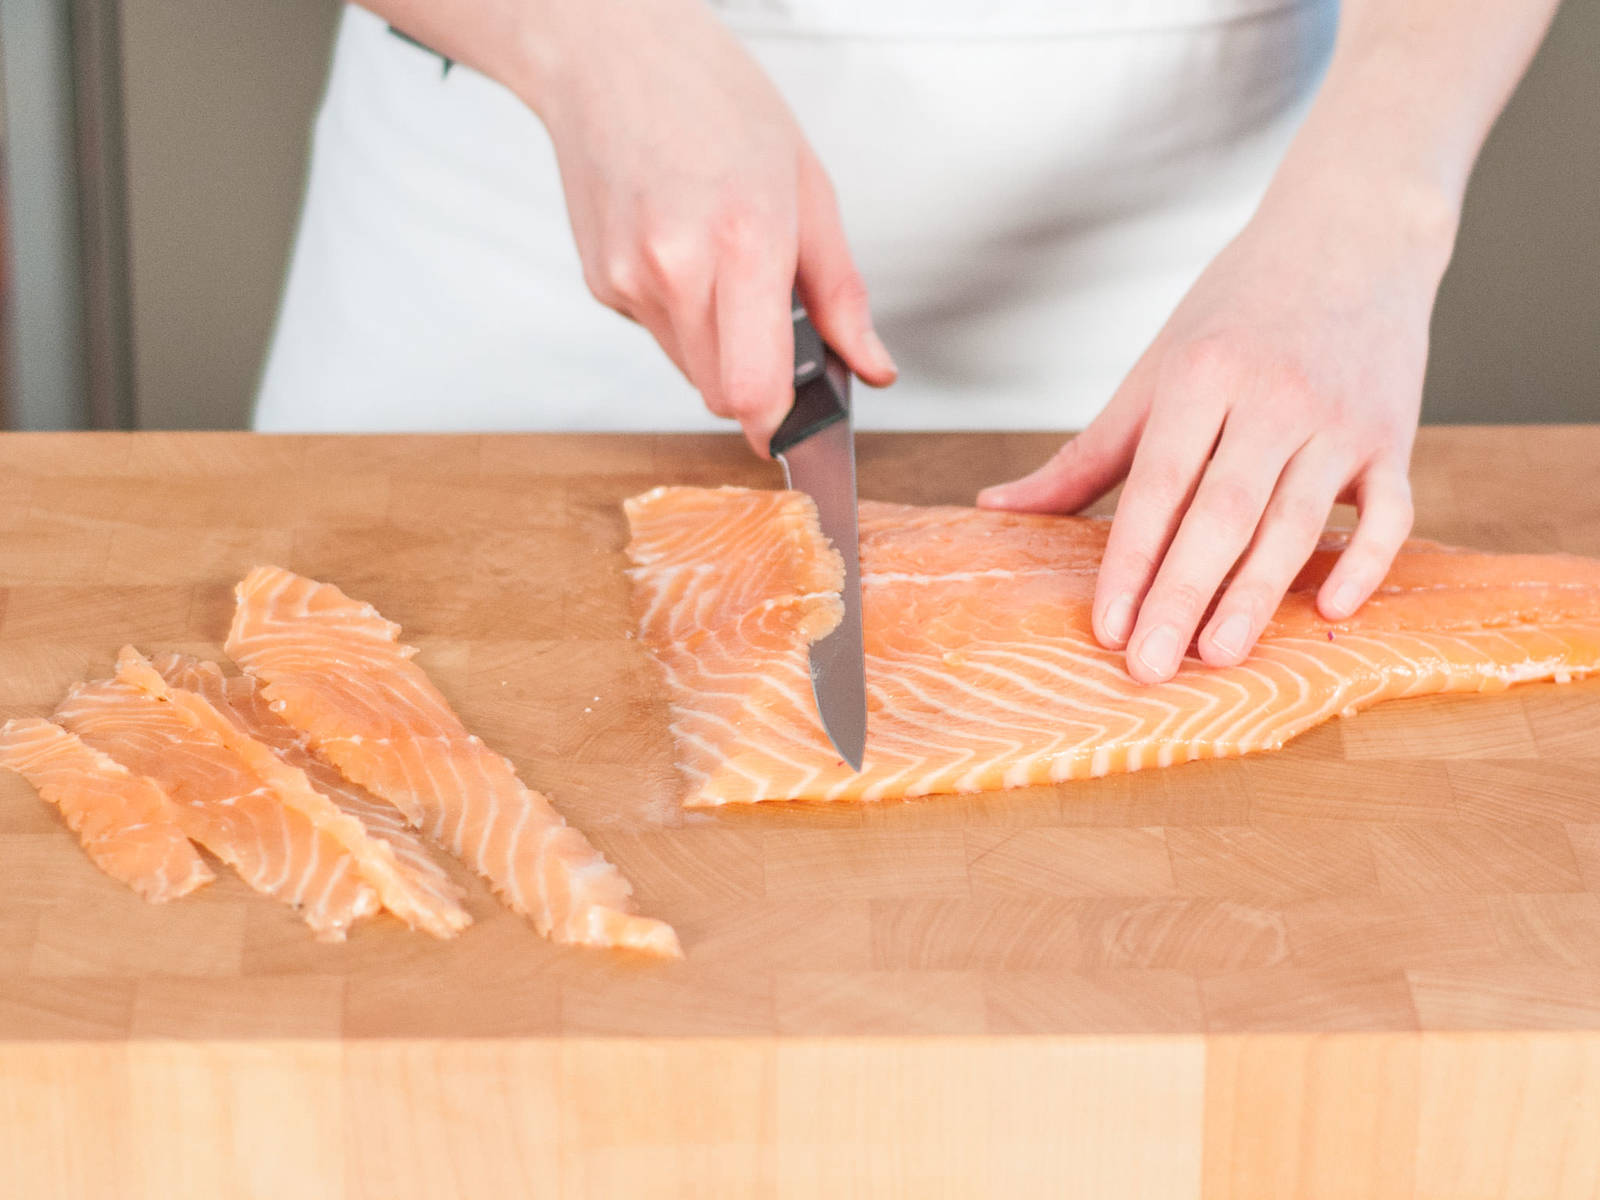 Either finely dice salmon fillet or cut into thin slices.